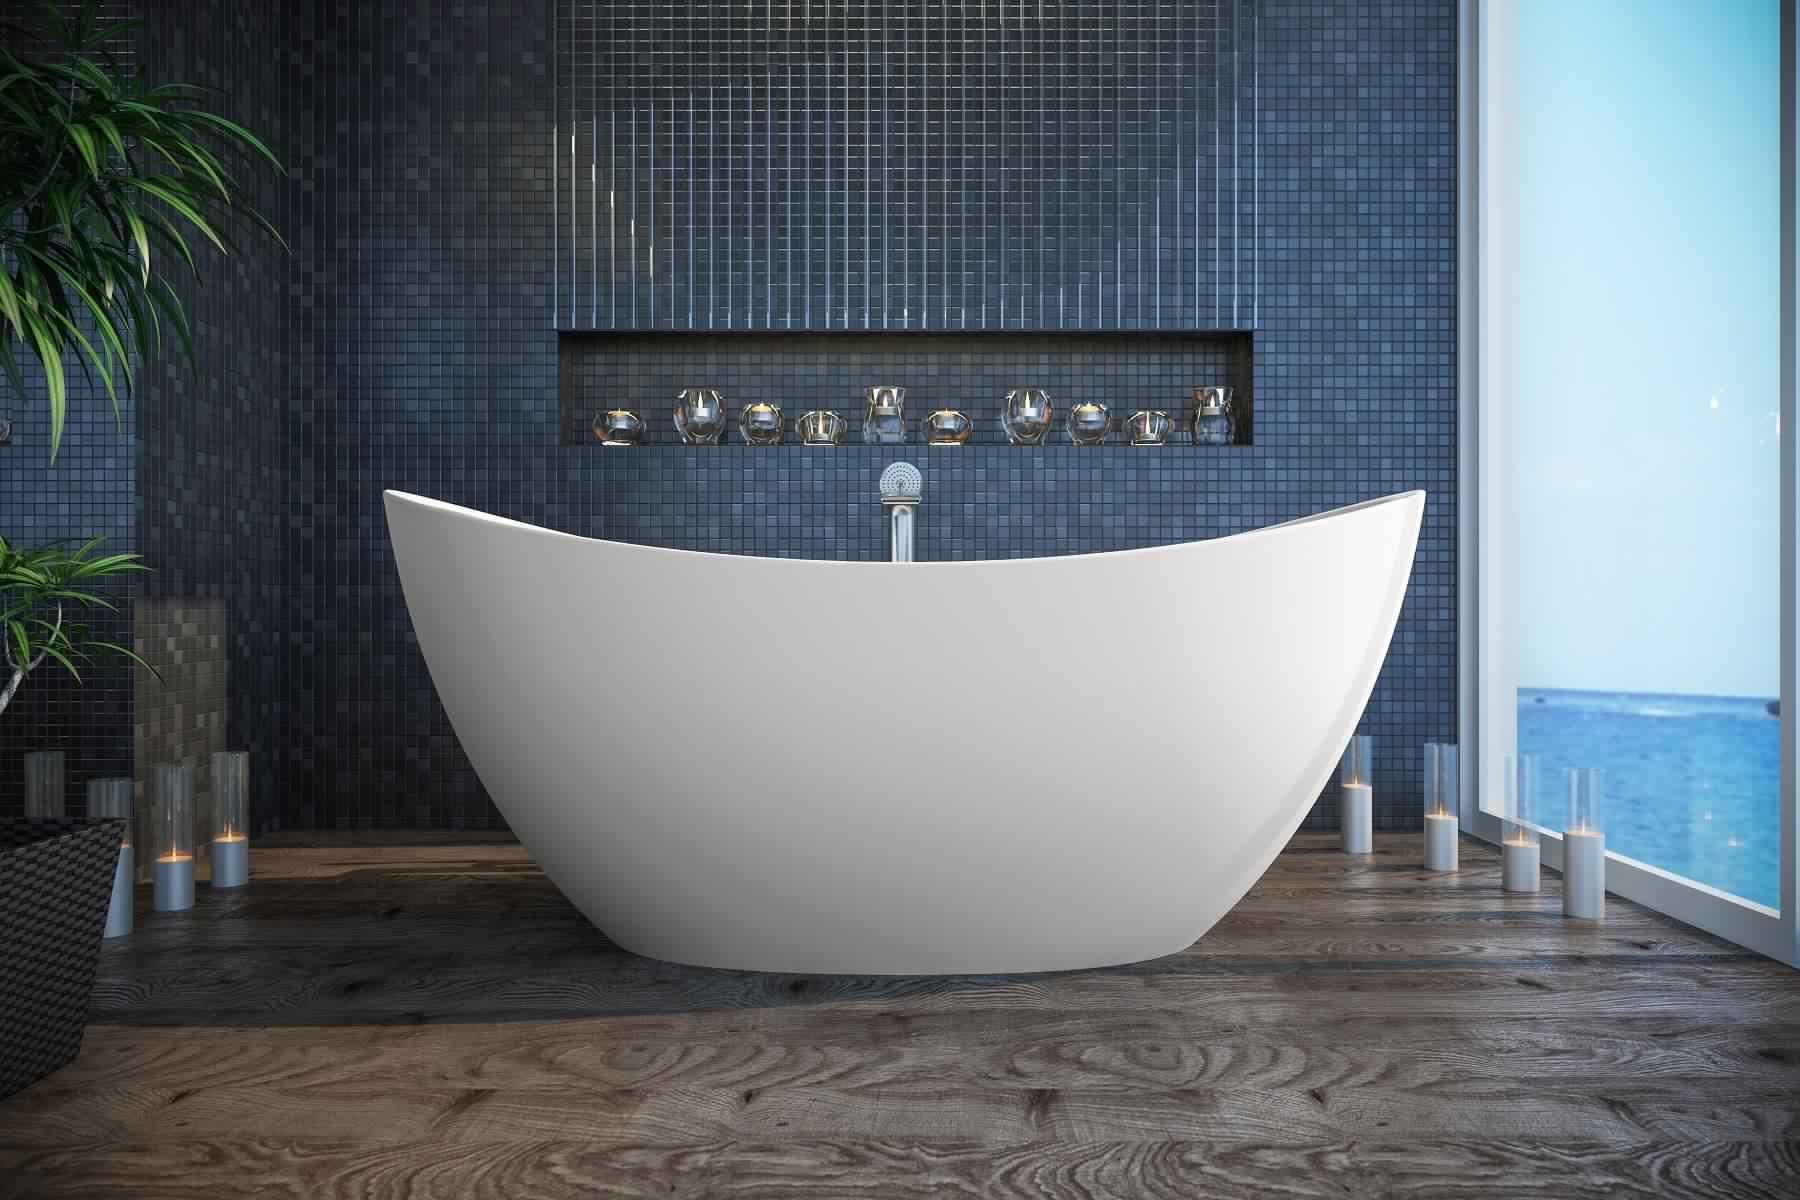 Smallest Bathtub Size -Slipper bathtub